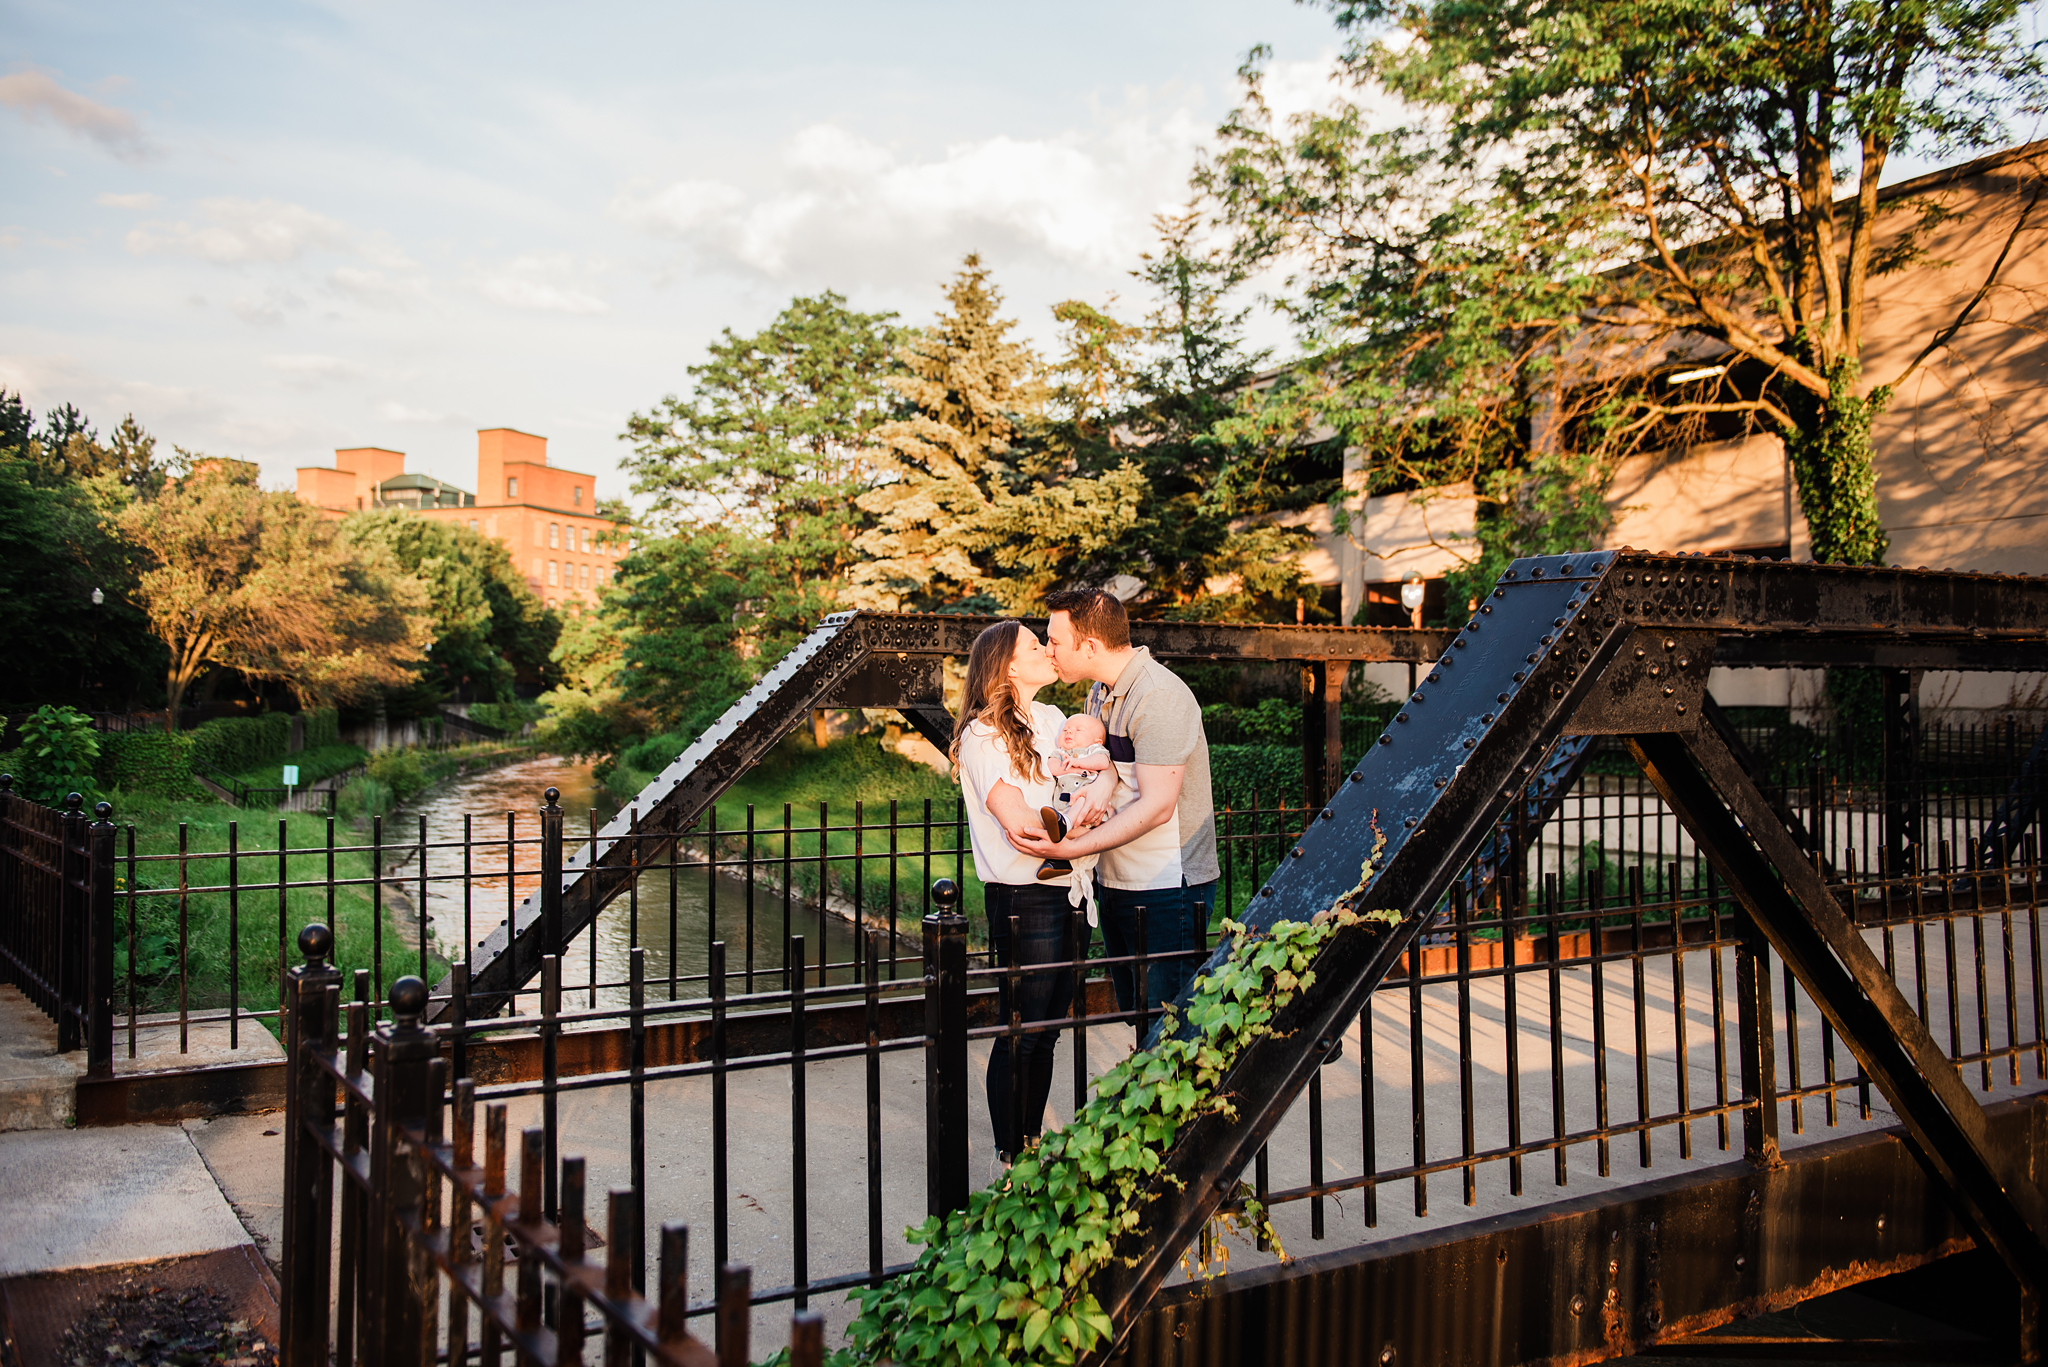 Franklin_Square_Park_Syracuse_Engagement_Session_JILL_STUDIO_Rochester_NY_Photographer_DSC_4168.jpg